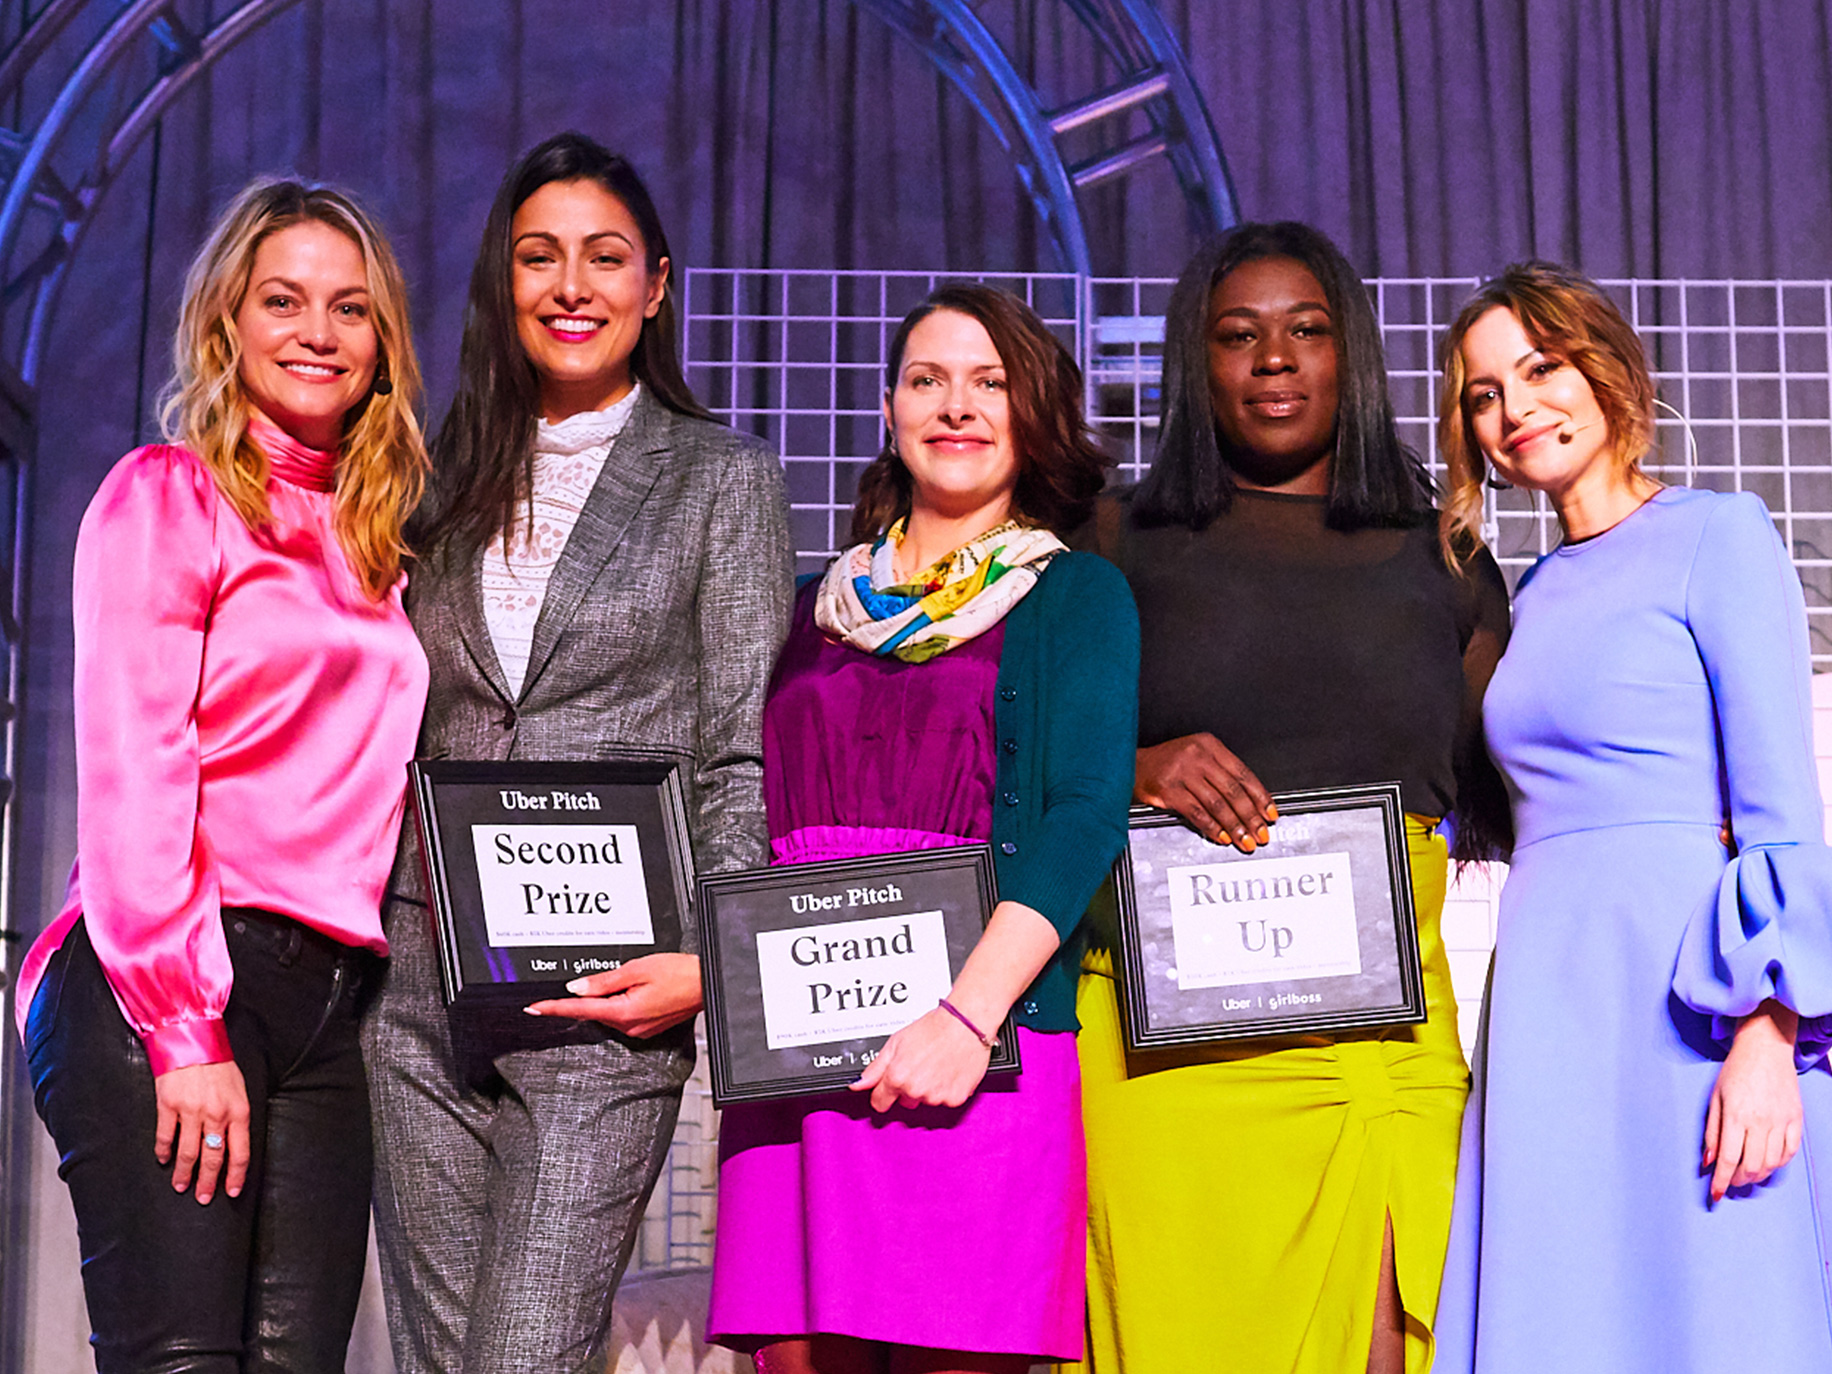 Meet The Uber Pitch Winners Who Took Home Over $200,000